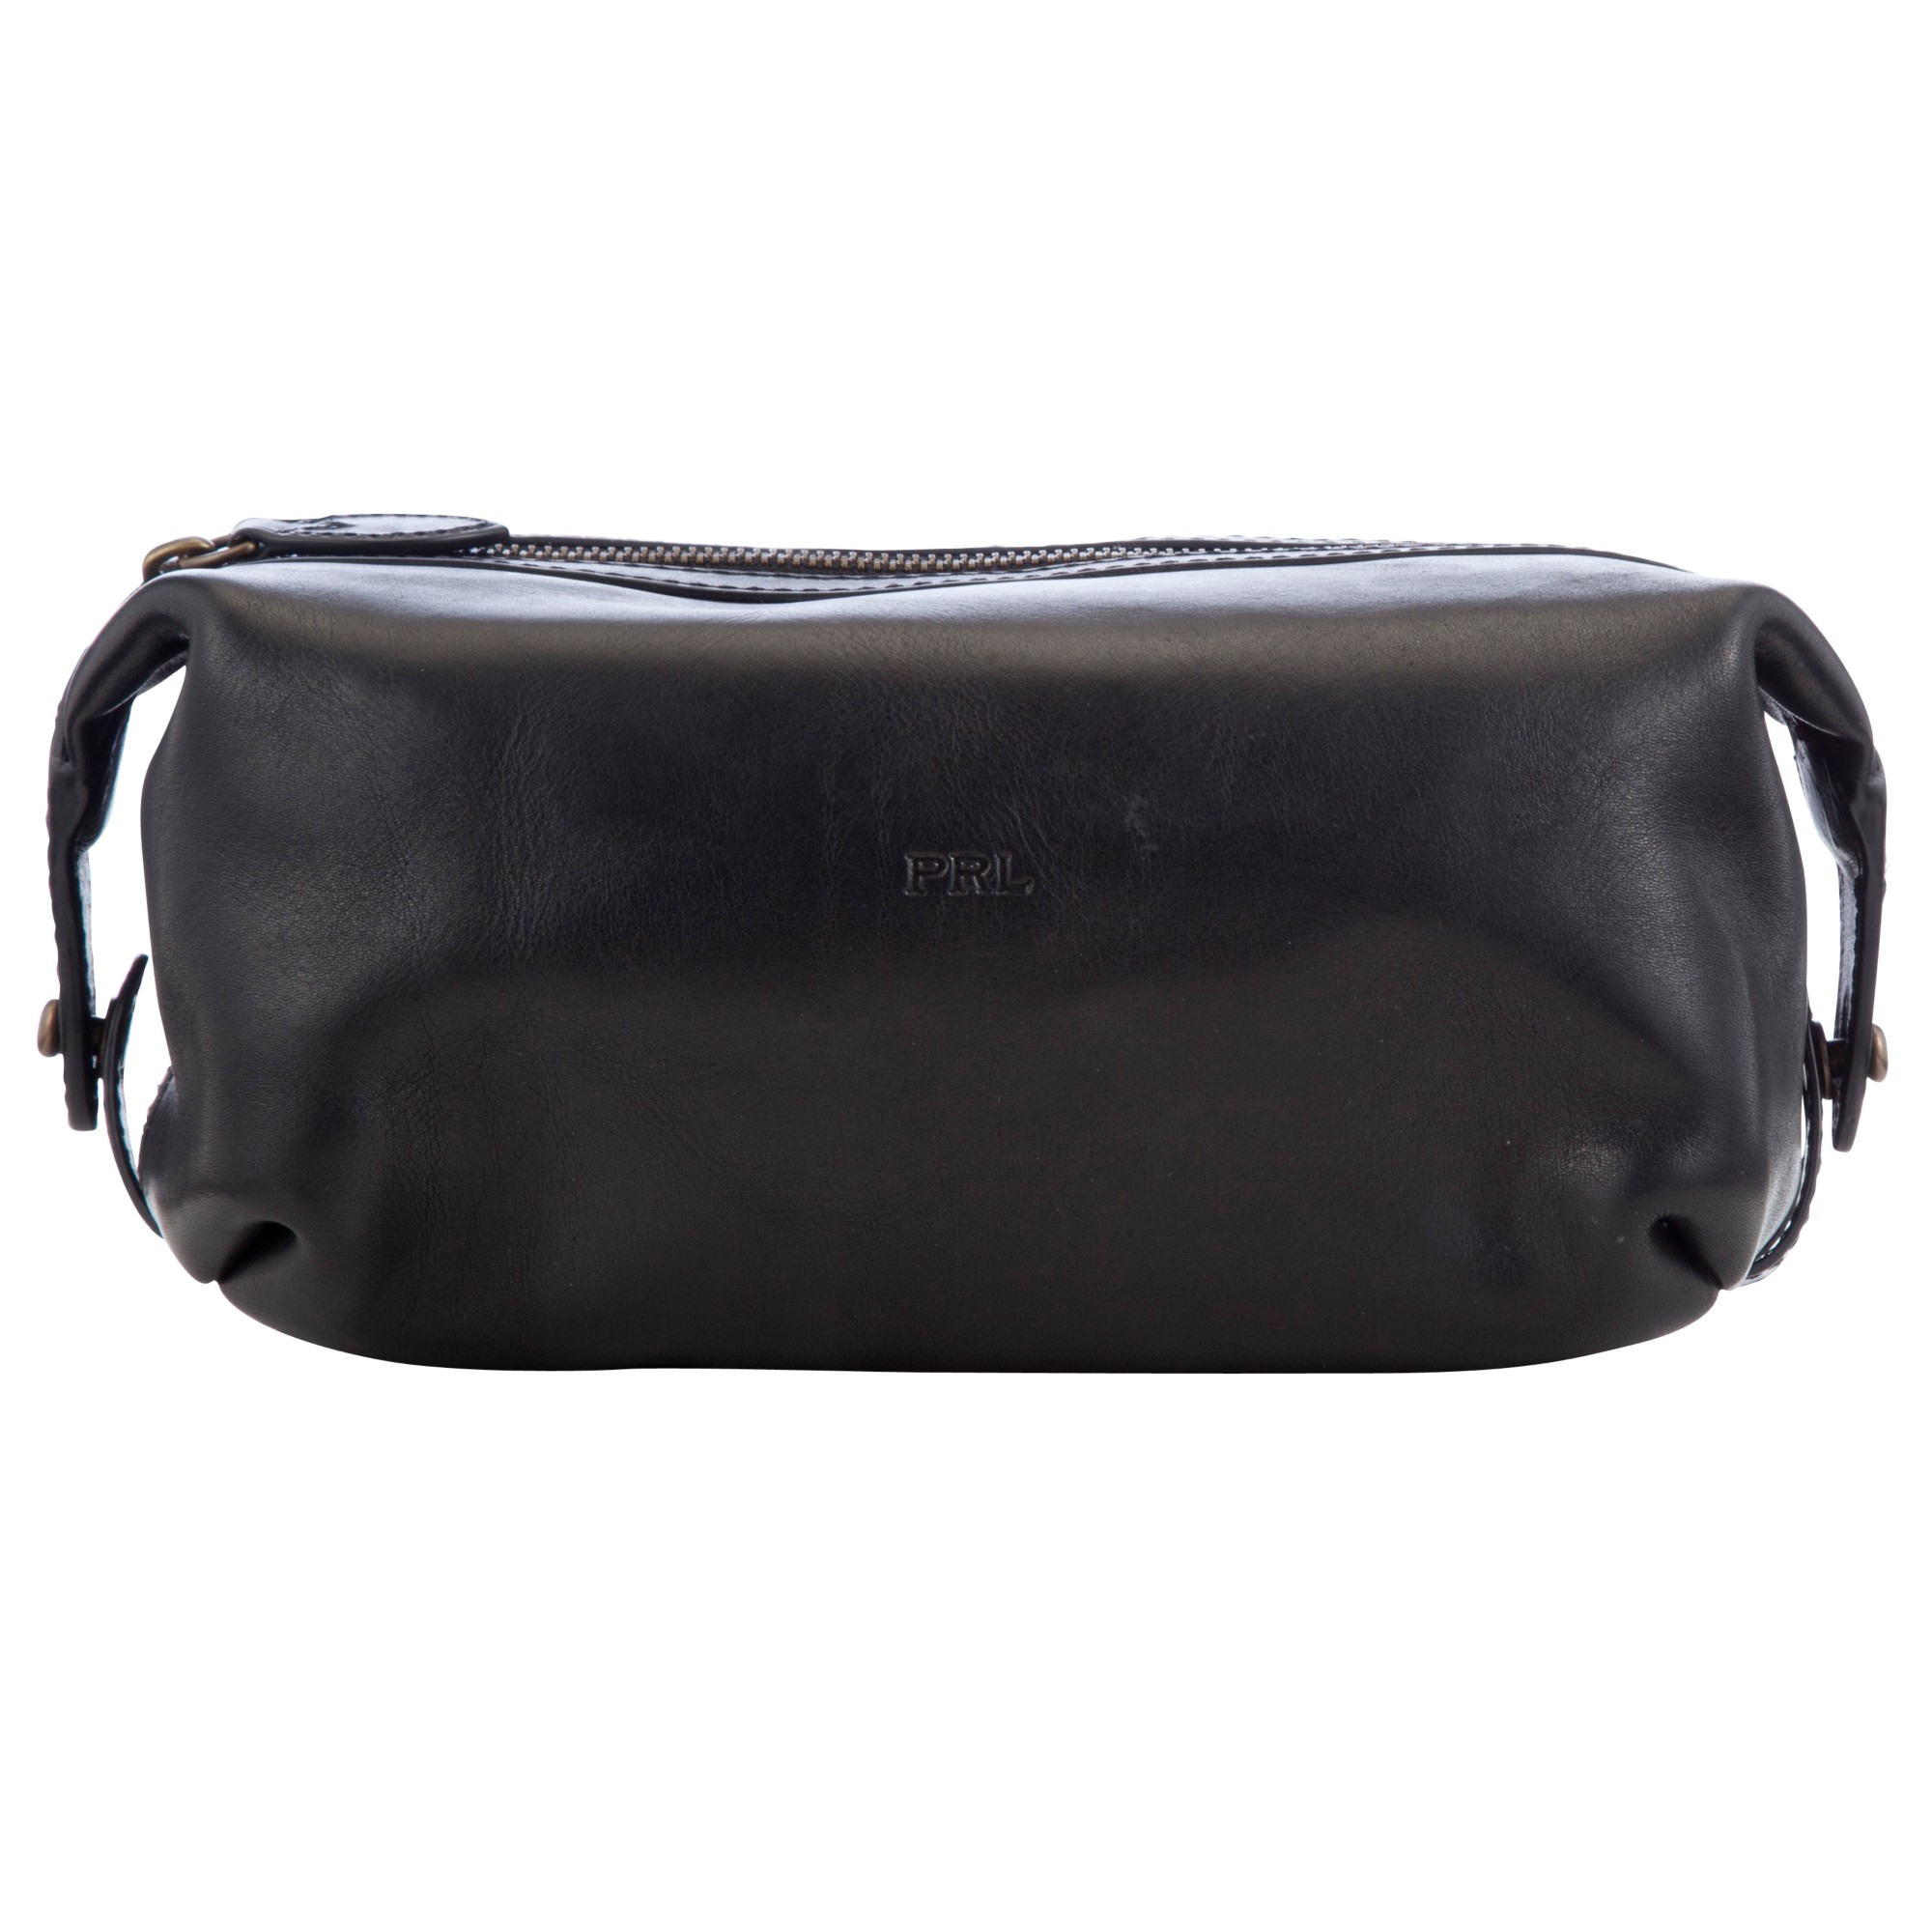 Polo Ralph Lauren Leather Wash Bag in Black for Men - Lyst 9ff1622546a47